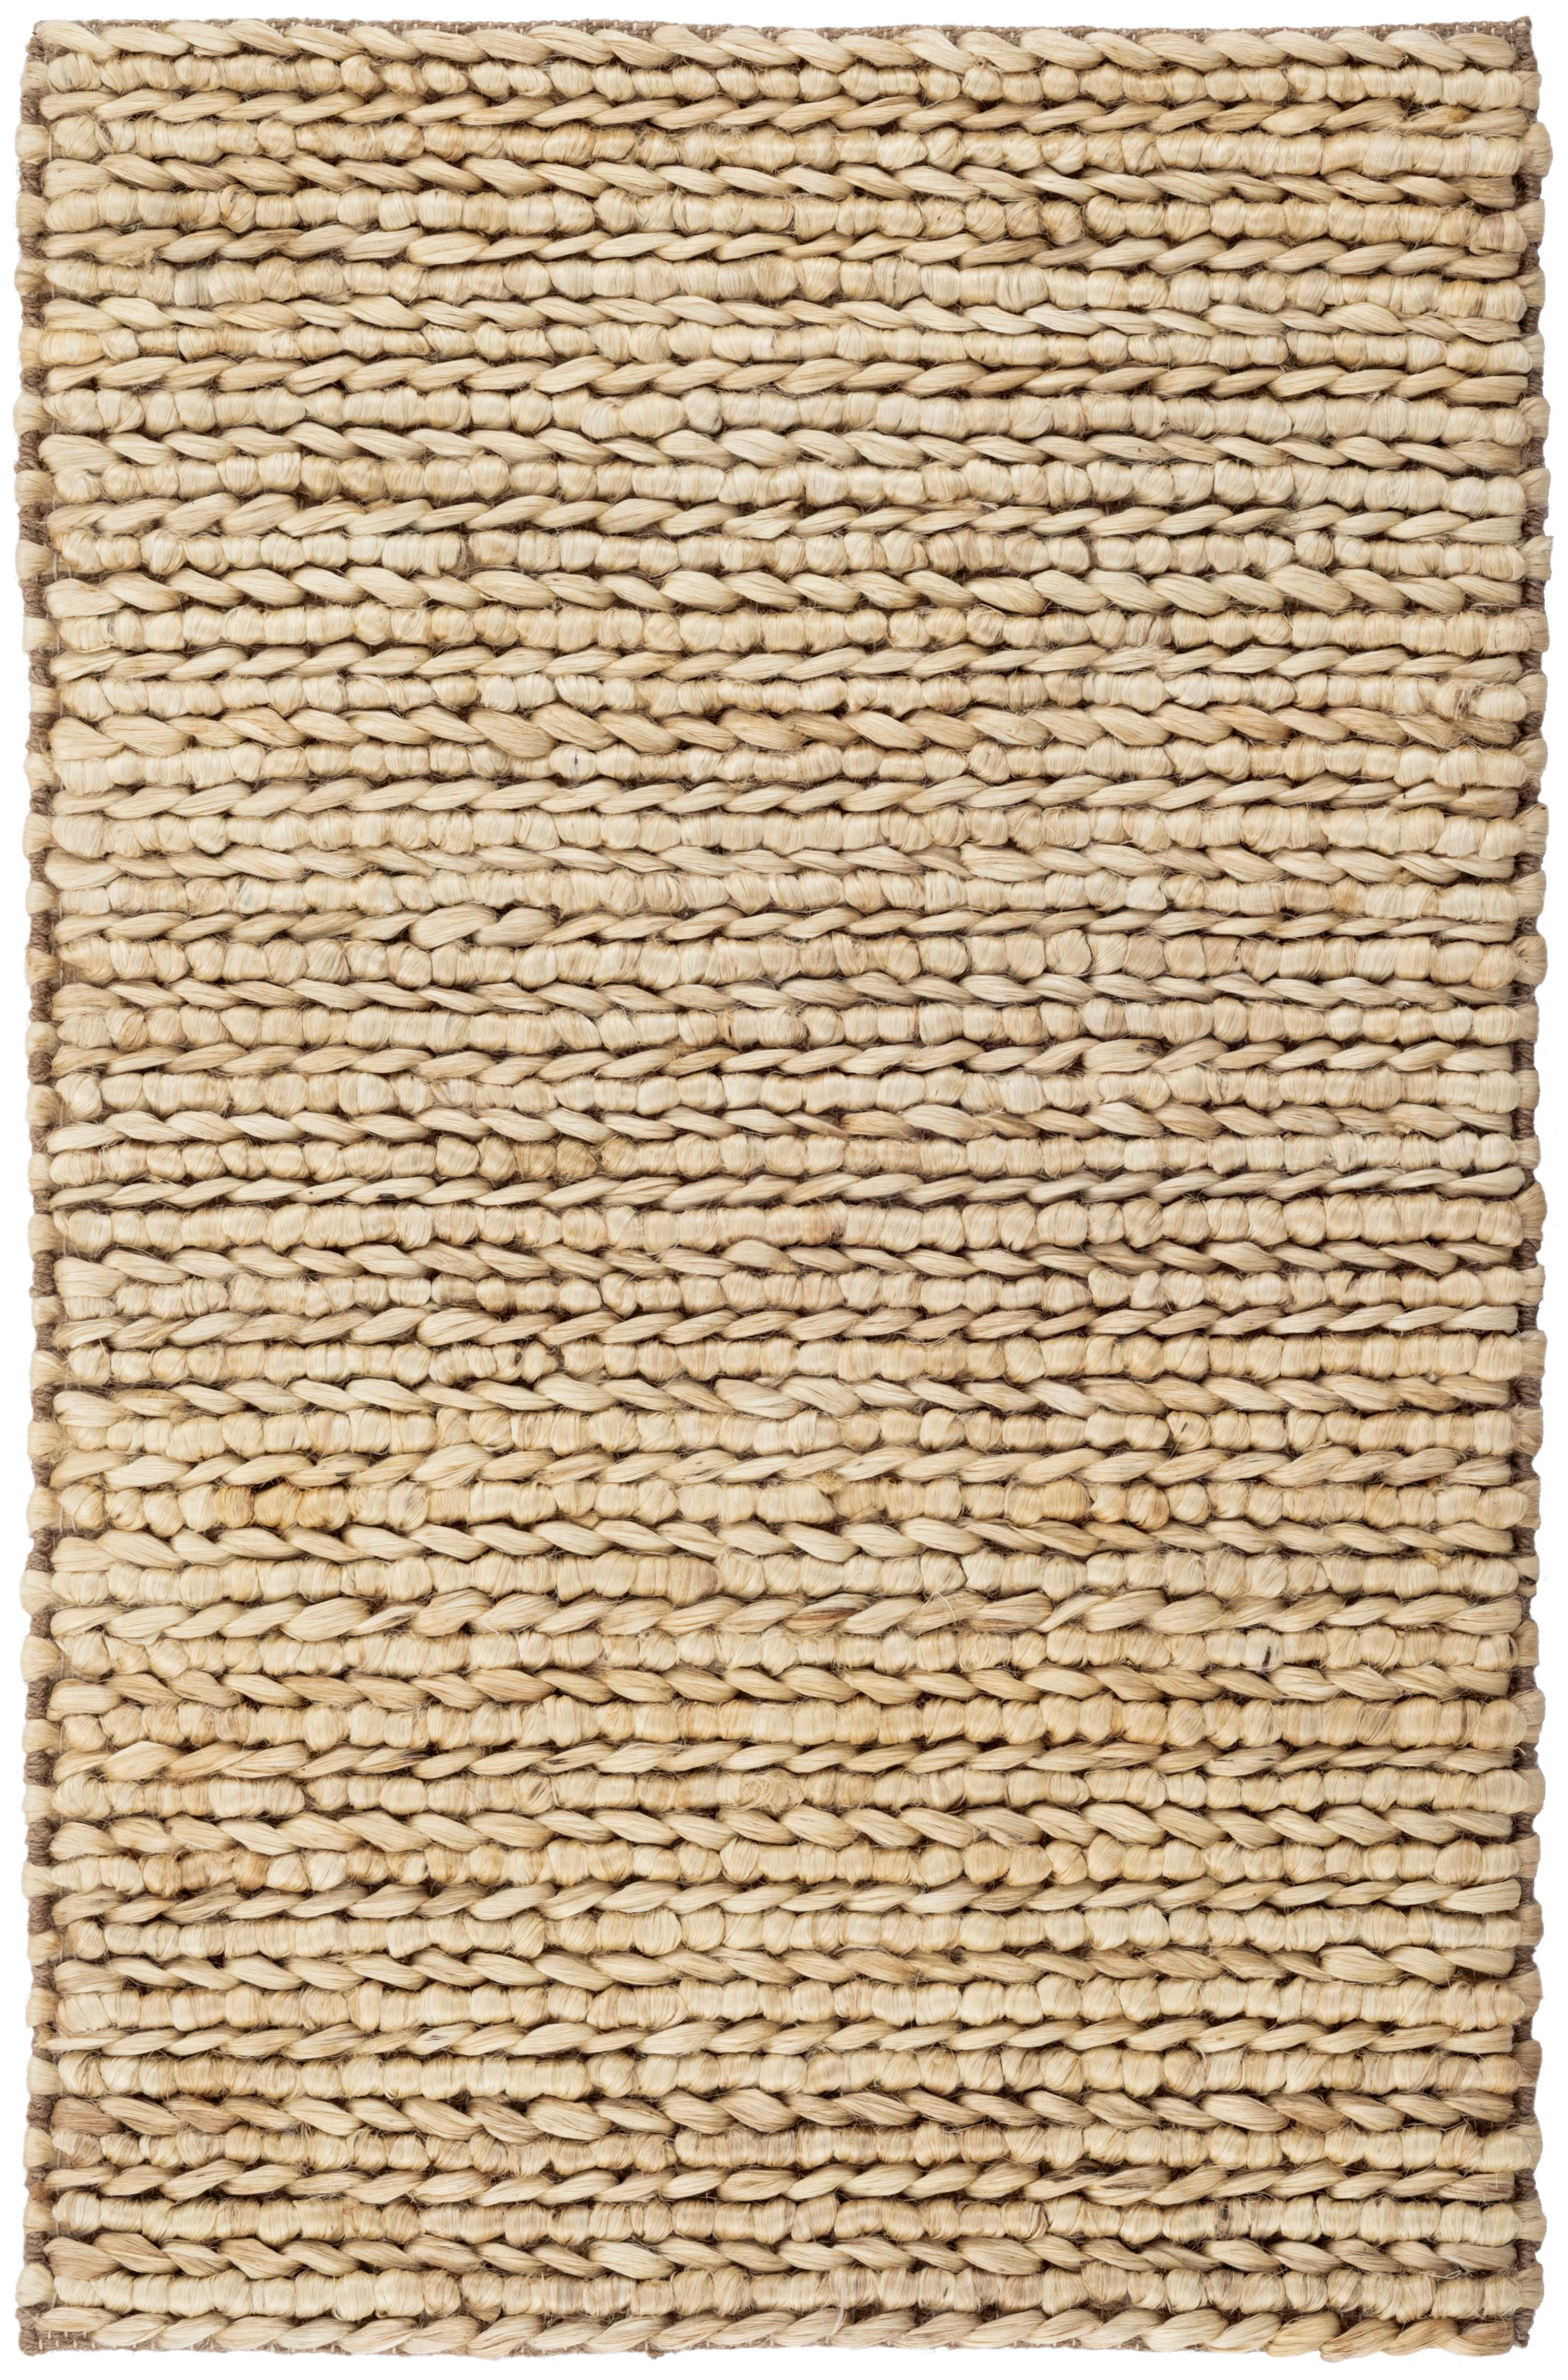 Woven Rugs Jute Woven Natural Rug Dash And Albert